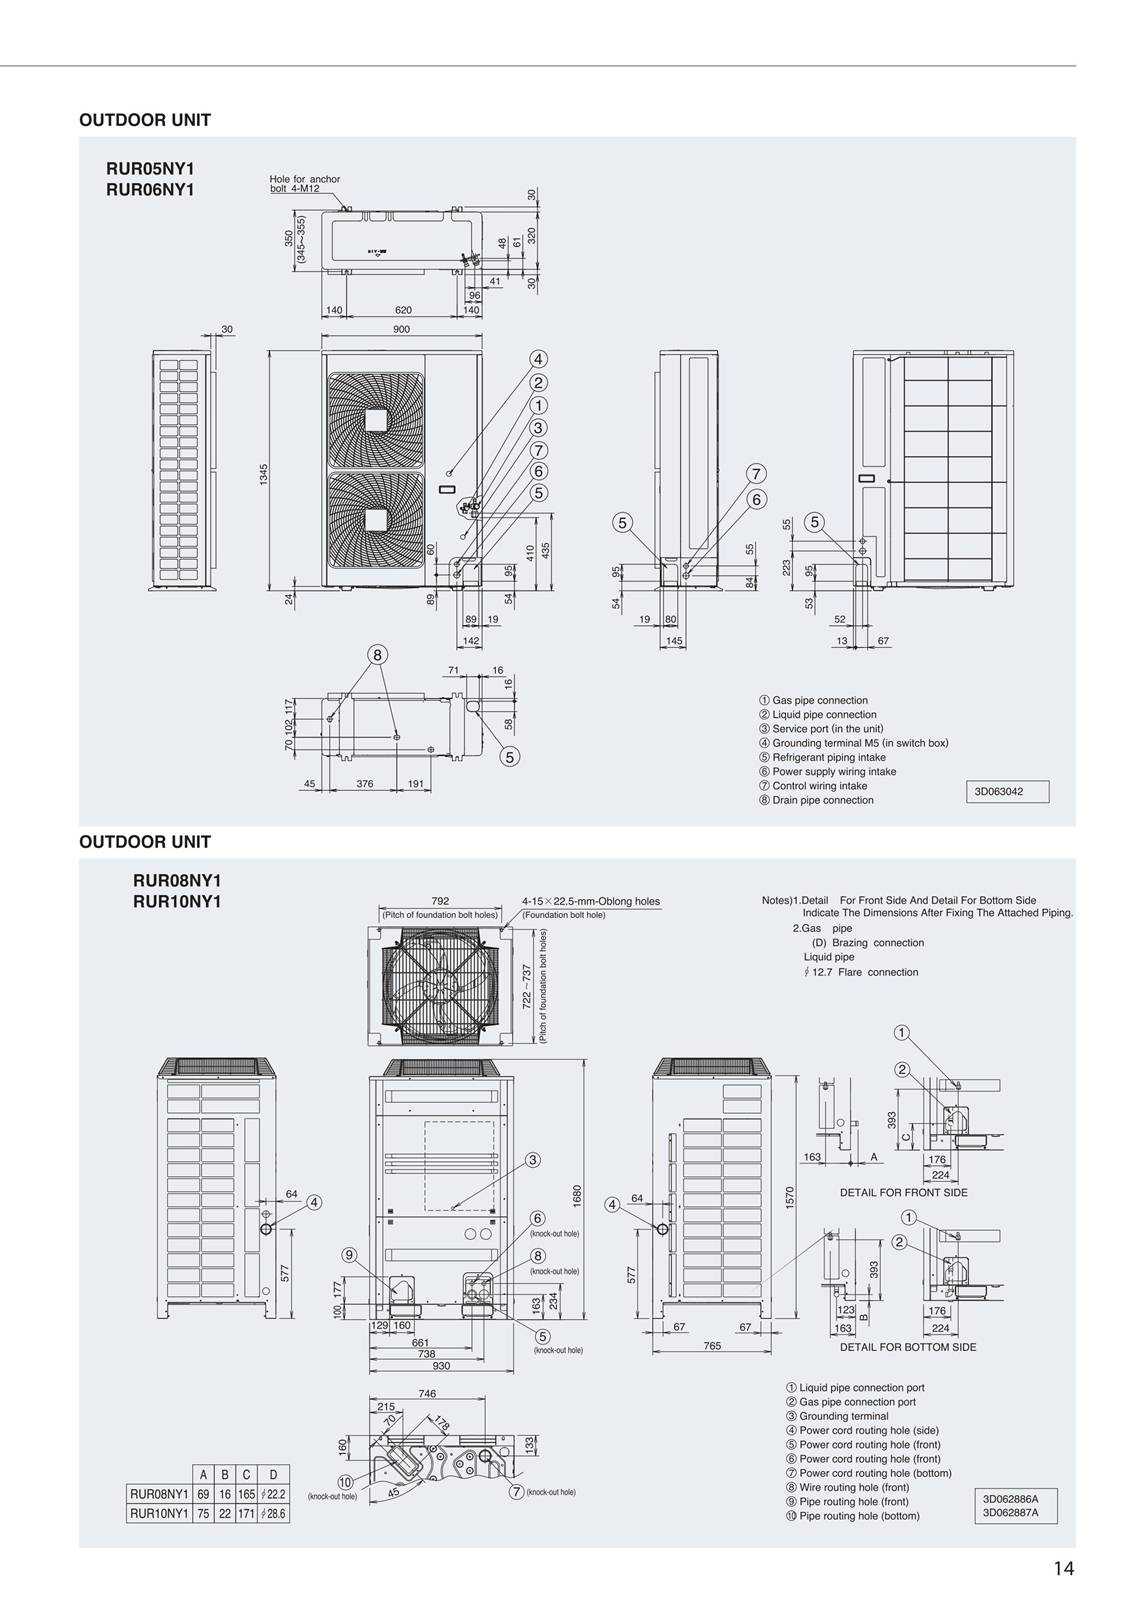 Wiring diagram ac cassette daikin free download wiring diagram free download wiring diagram daikin split duct high static of wiring diagram ac cassette daikin asfbconference2016 Choice Image